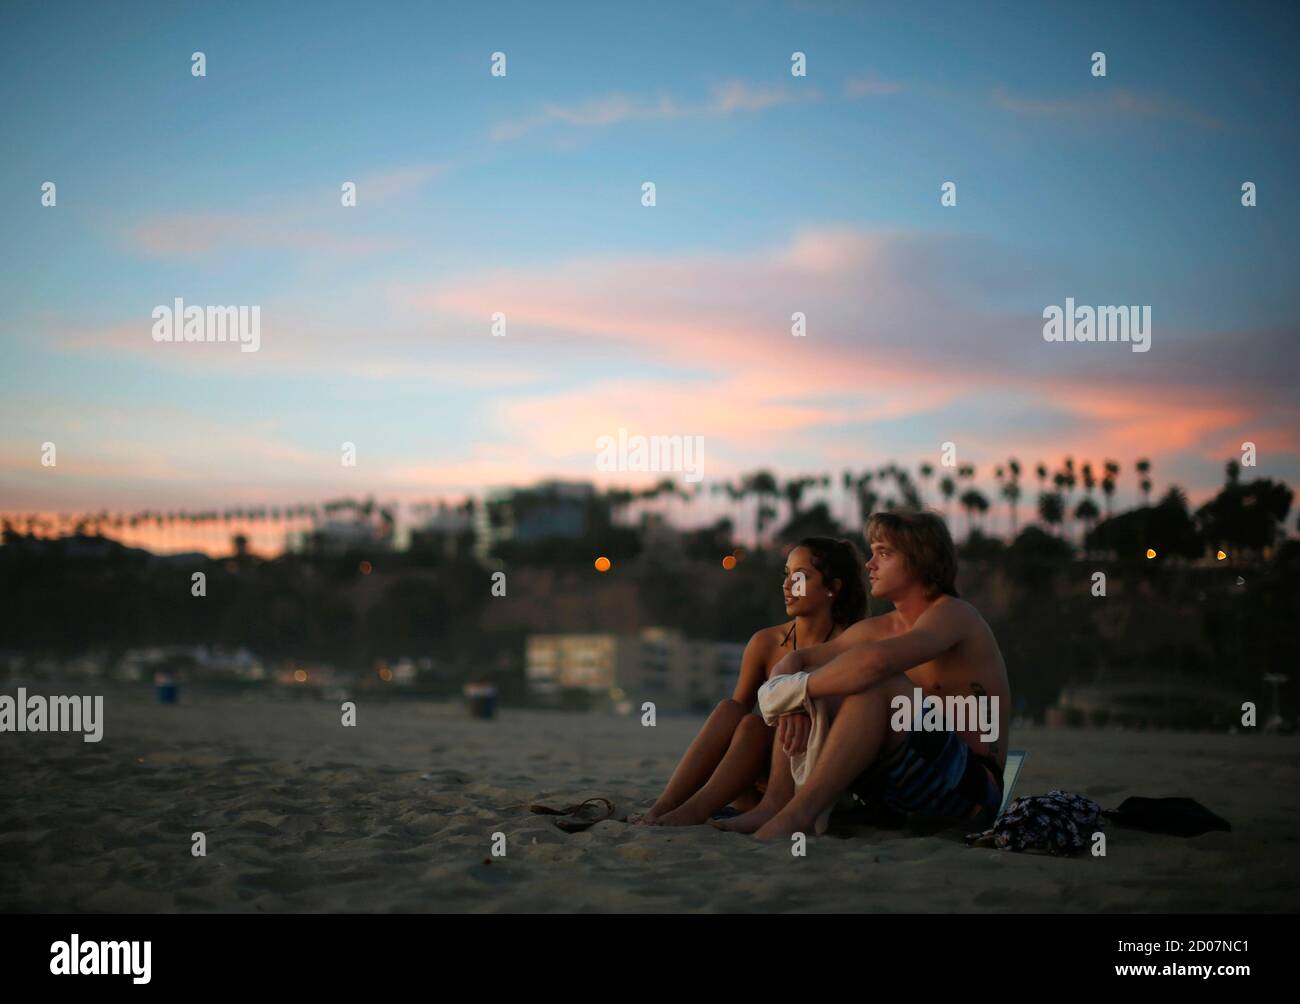 Chris Truebe (R), 27, and Kara Ortega, 20, watch the sun set over the Pacific Ocean on the beach in Santa Monica, California October 3, 2014. Southern California sizzled in a heat wave as temperatures soared above 100 degrees Fahrenheit in parts of Los Angeles.  REUTERS/Lucy Nicholson (UNITED STATES - Tags: ENVIRONMENT SOCIETY) Stock Photo